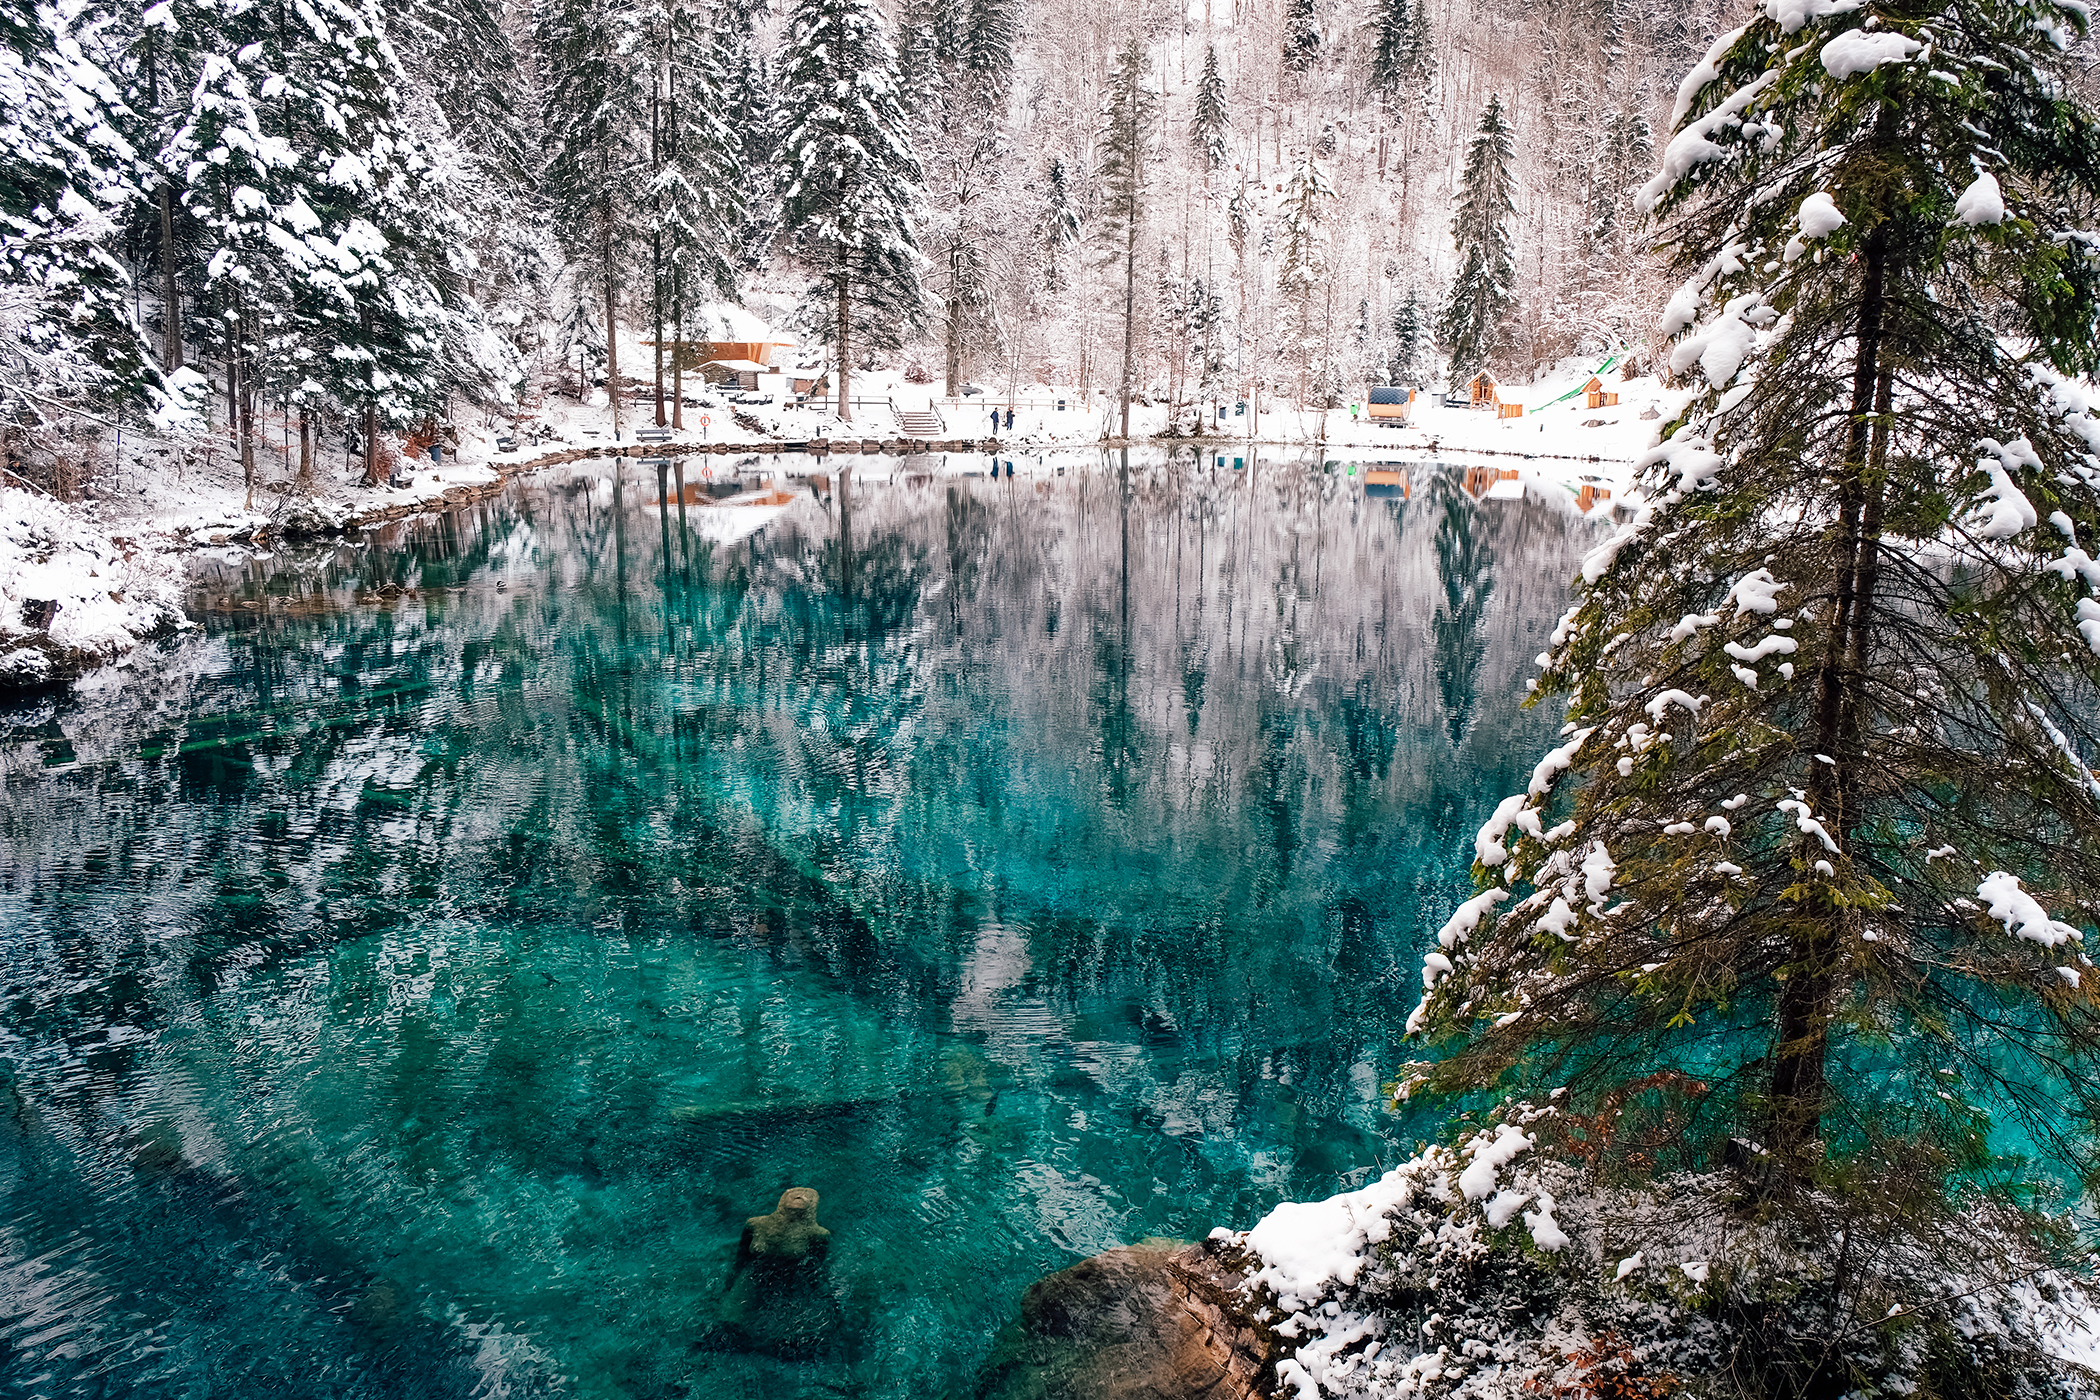 https://www.awwway.ch/wp-content/uploads/2018/01/Blausee_Hiver_Statue.jpg